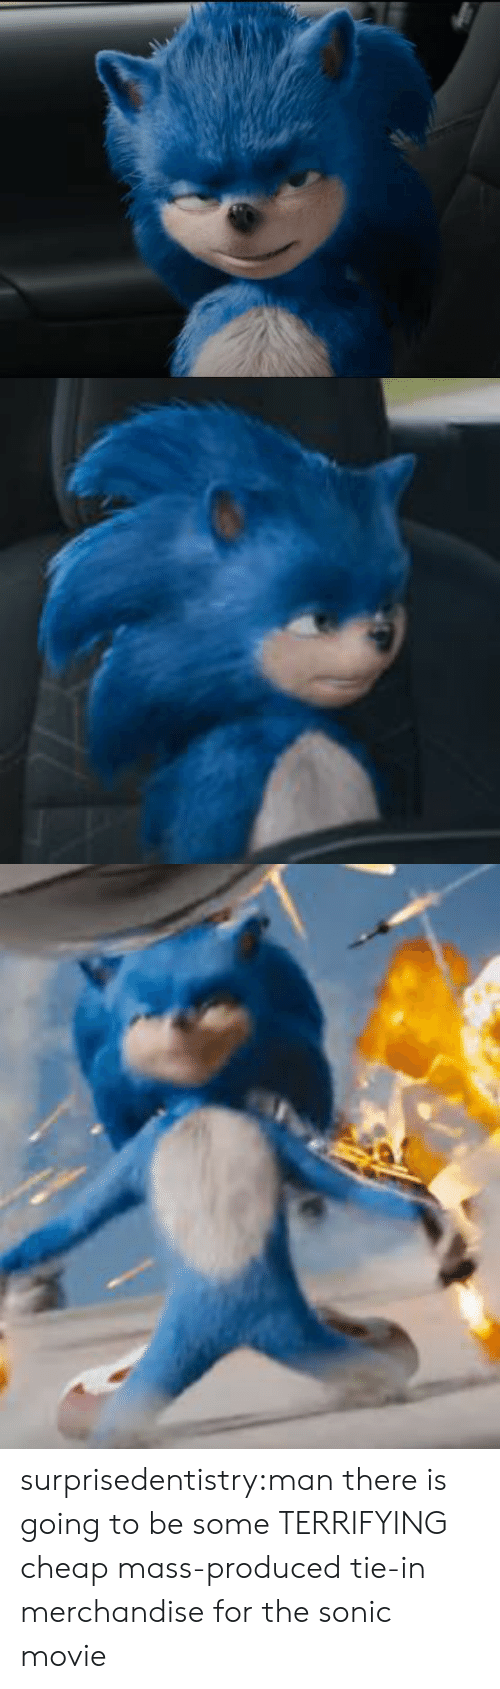 Tumblr, Blog, and Movie: surprisedentistry:man there is going to be some TERRIFYING cheap mass-produced tie-in merchandise for the sonic movie